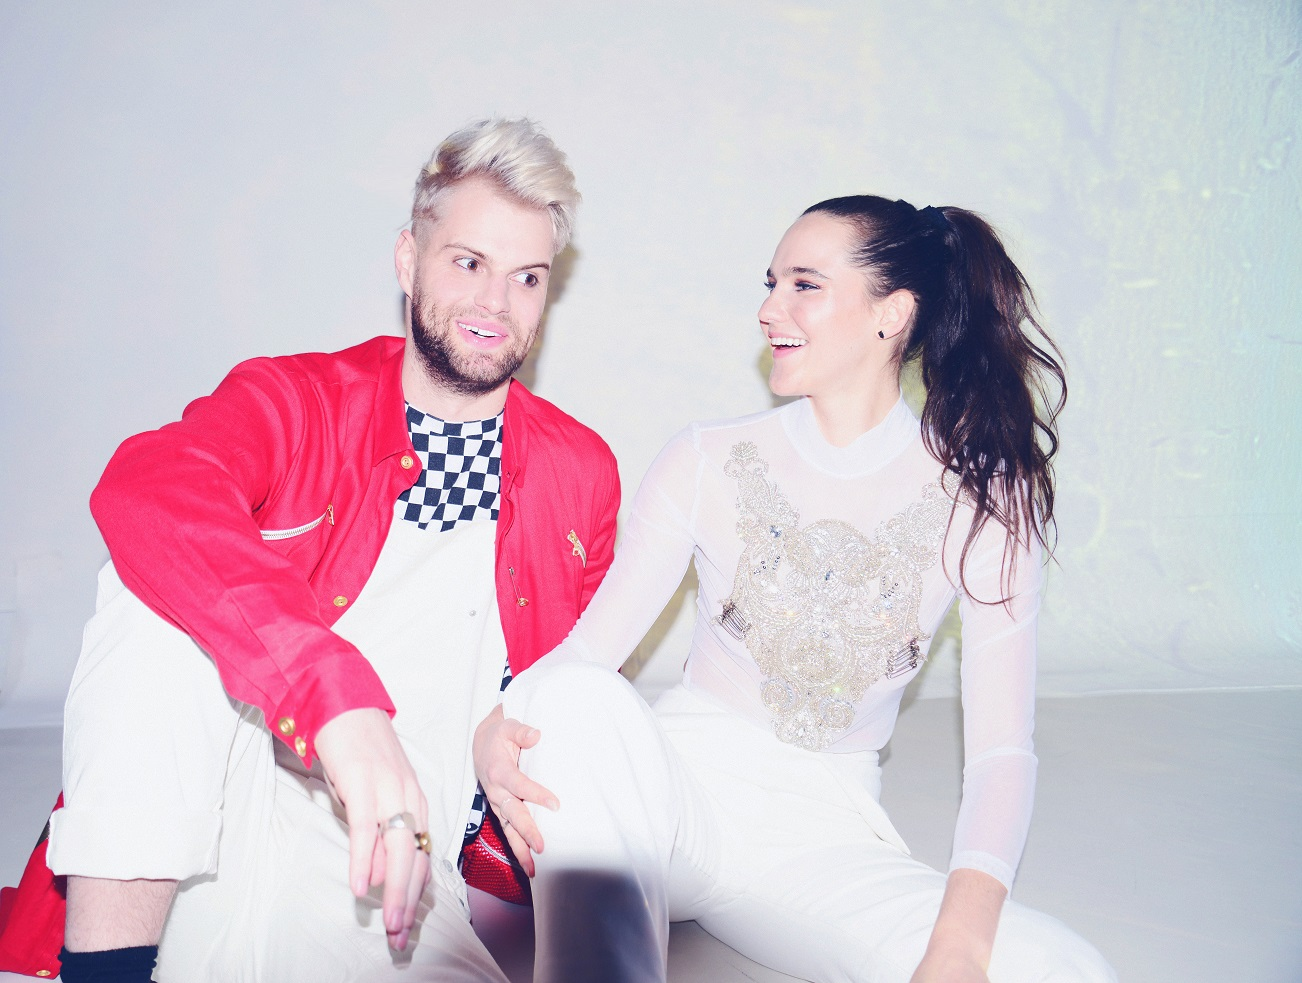 Sofi Tukker - Treehouse World Tour Part 1 - Photo by Shervin Lainez